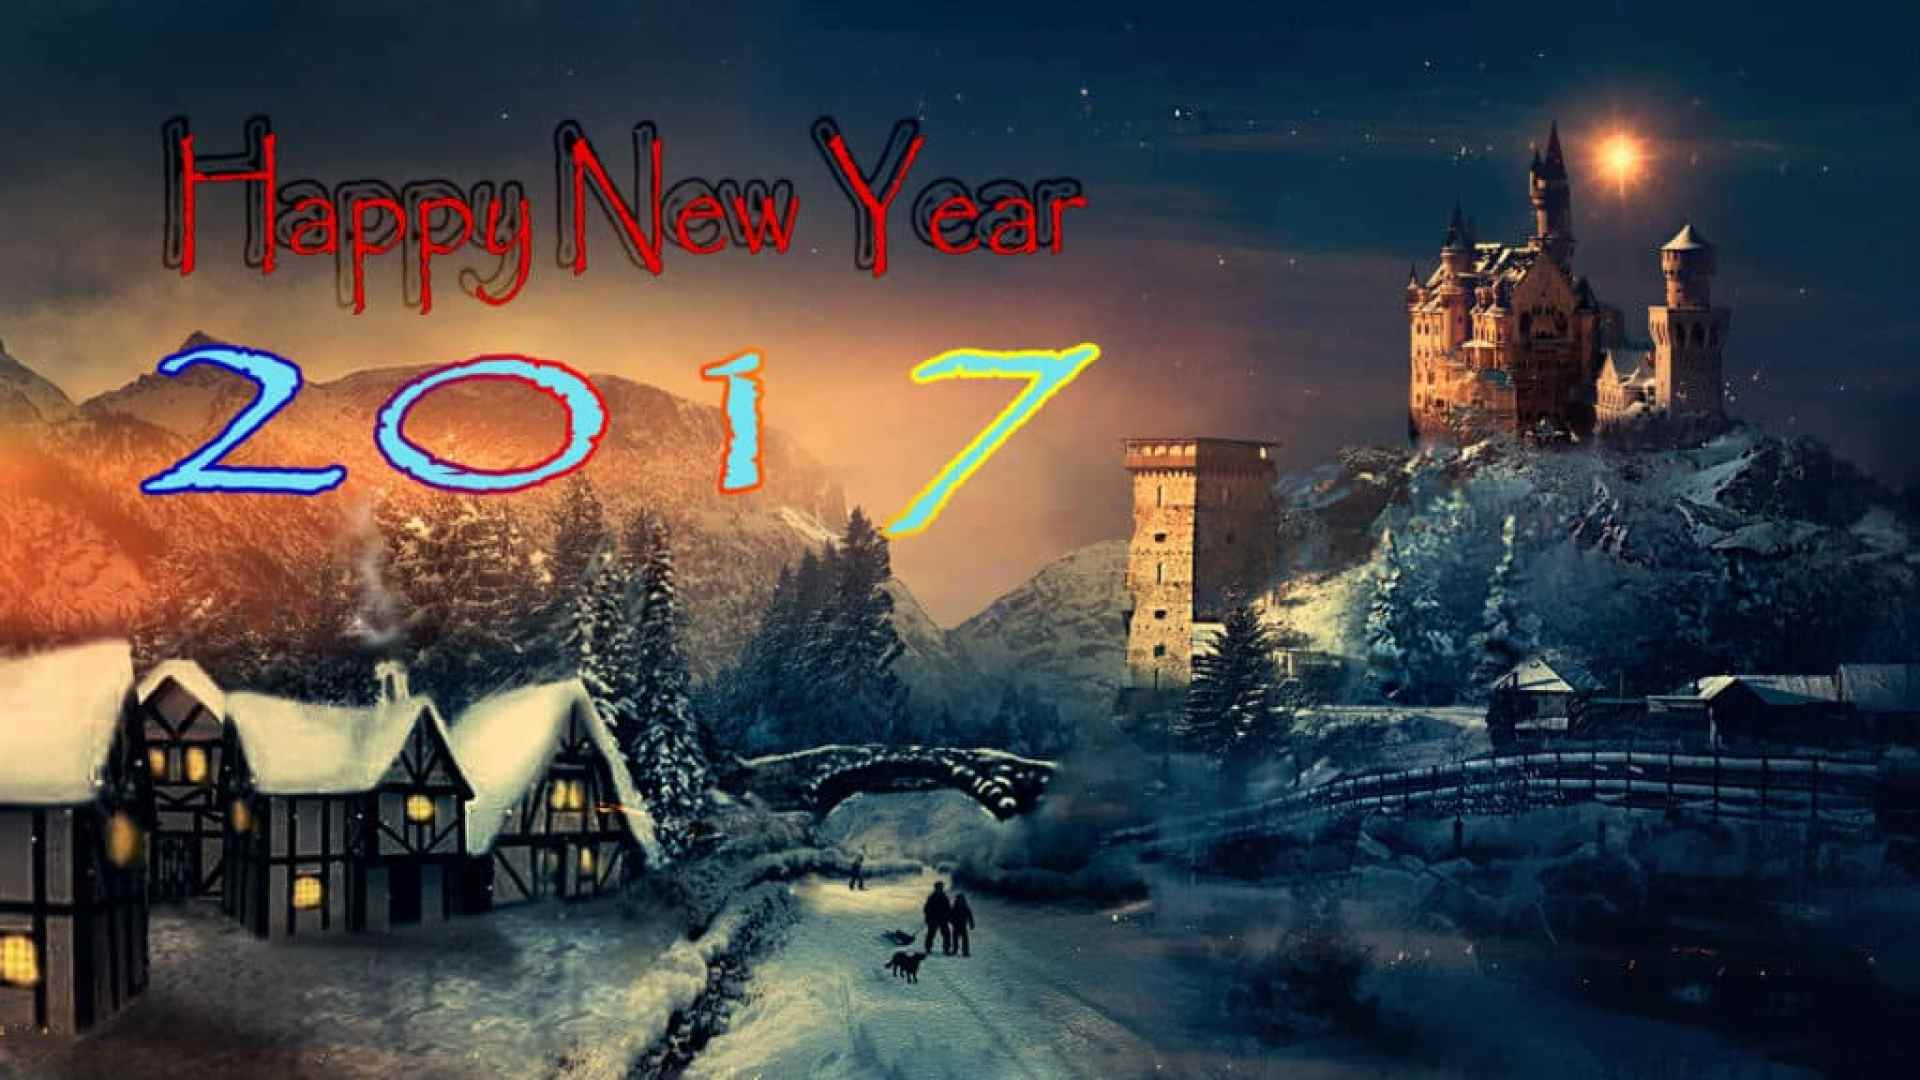 Happy New Year 2017 with hiily background